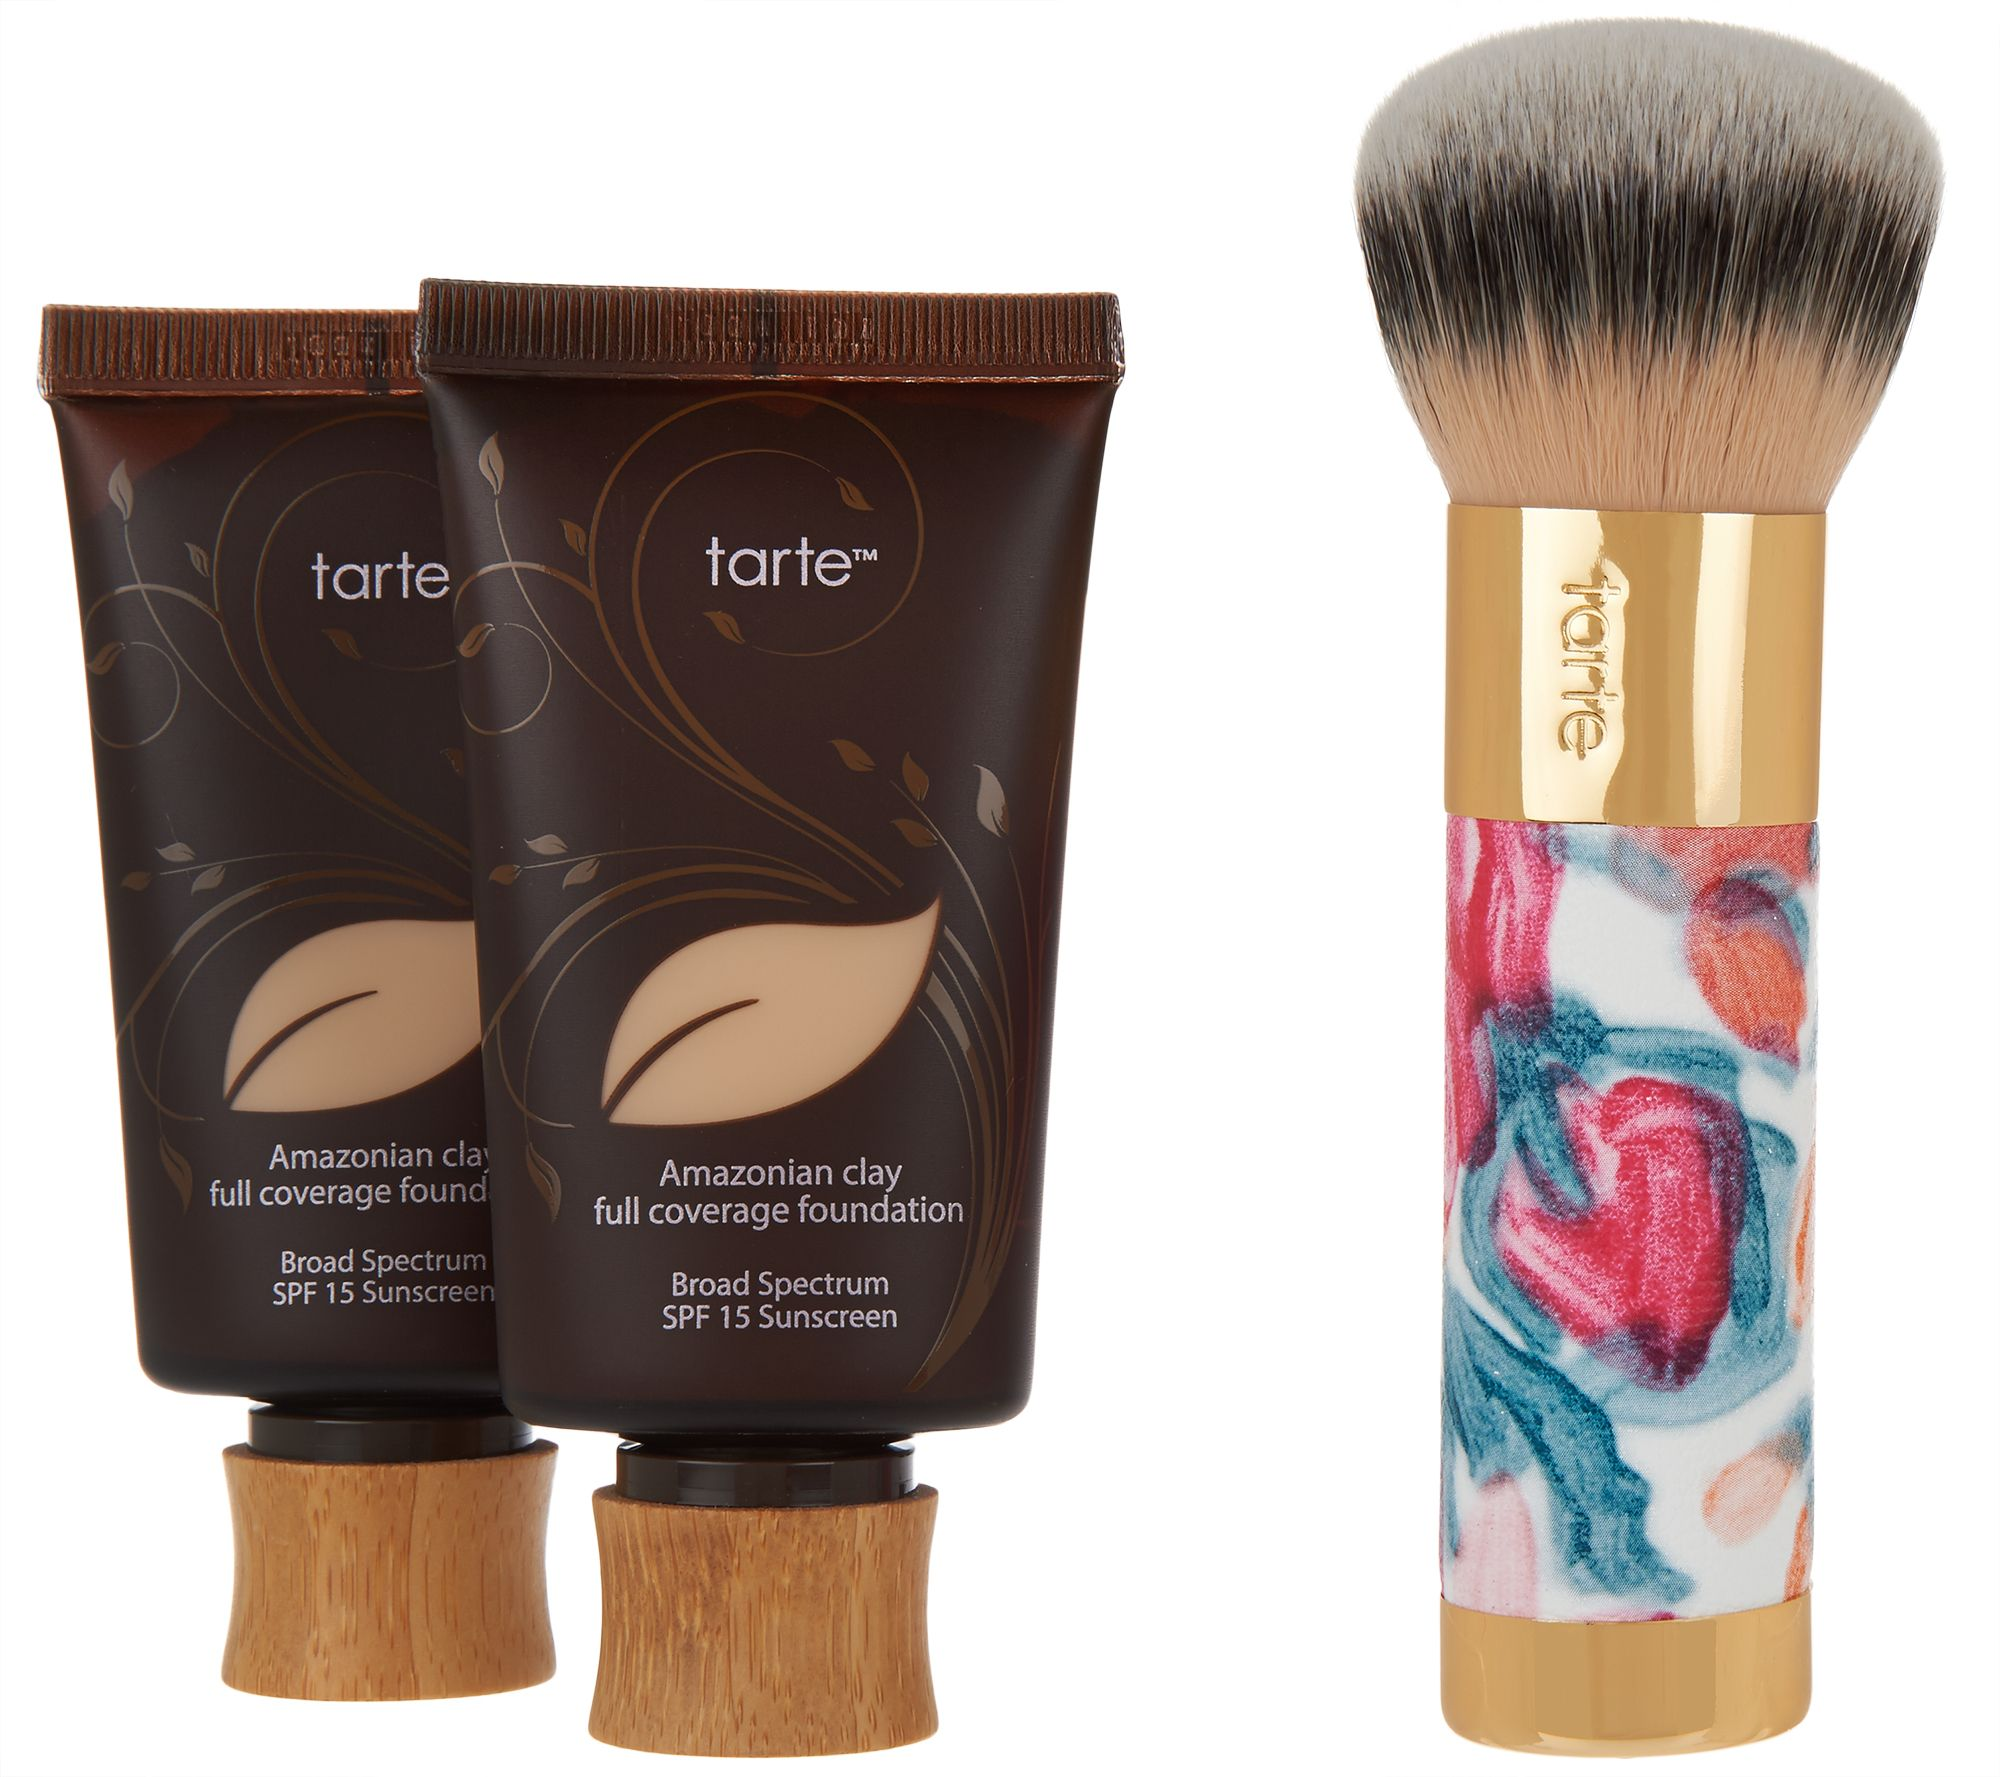 tarte Super-Size Amazonian Clay Foundation with Deco Brush - A274145